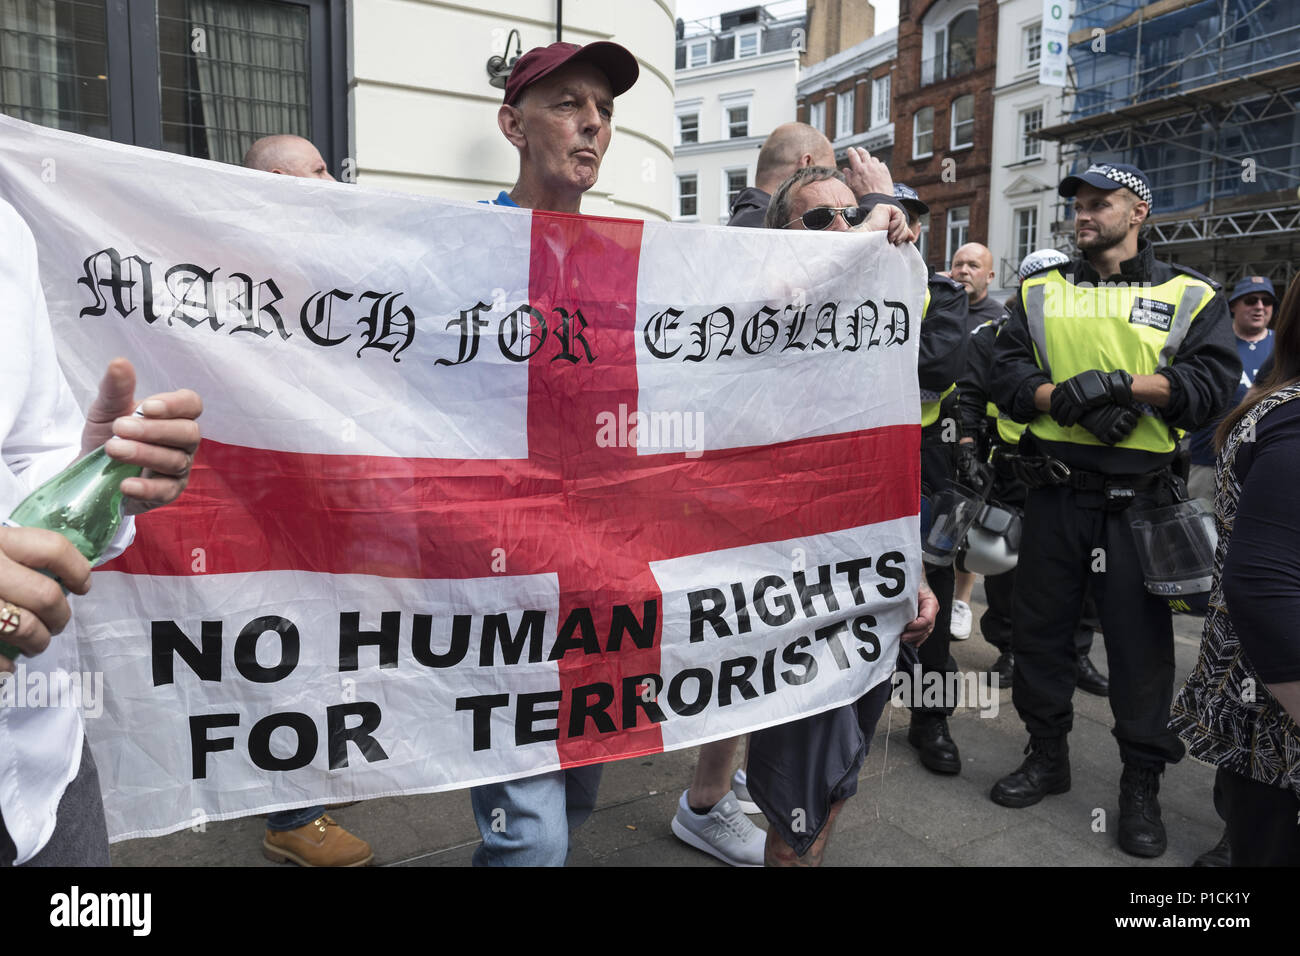 London, UK. 10th June, 2018. A counter protester holds an English flag in opposition to the Al Quds Day rally.The Al Quds Day rally is an event which is supposed to highlight the plight of the Palestinian people and raise awareness of Islamic persecution around the world. The rally has caused controversy across the UK because speakers at the event openly call for the destruction of Israel and some participants wave the flag of Hezbollah, a proscribed terrorist group. Credit: Edward Crawford/SOPA Images/ZUMA Wire/Alamy Live News - Stock Image